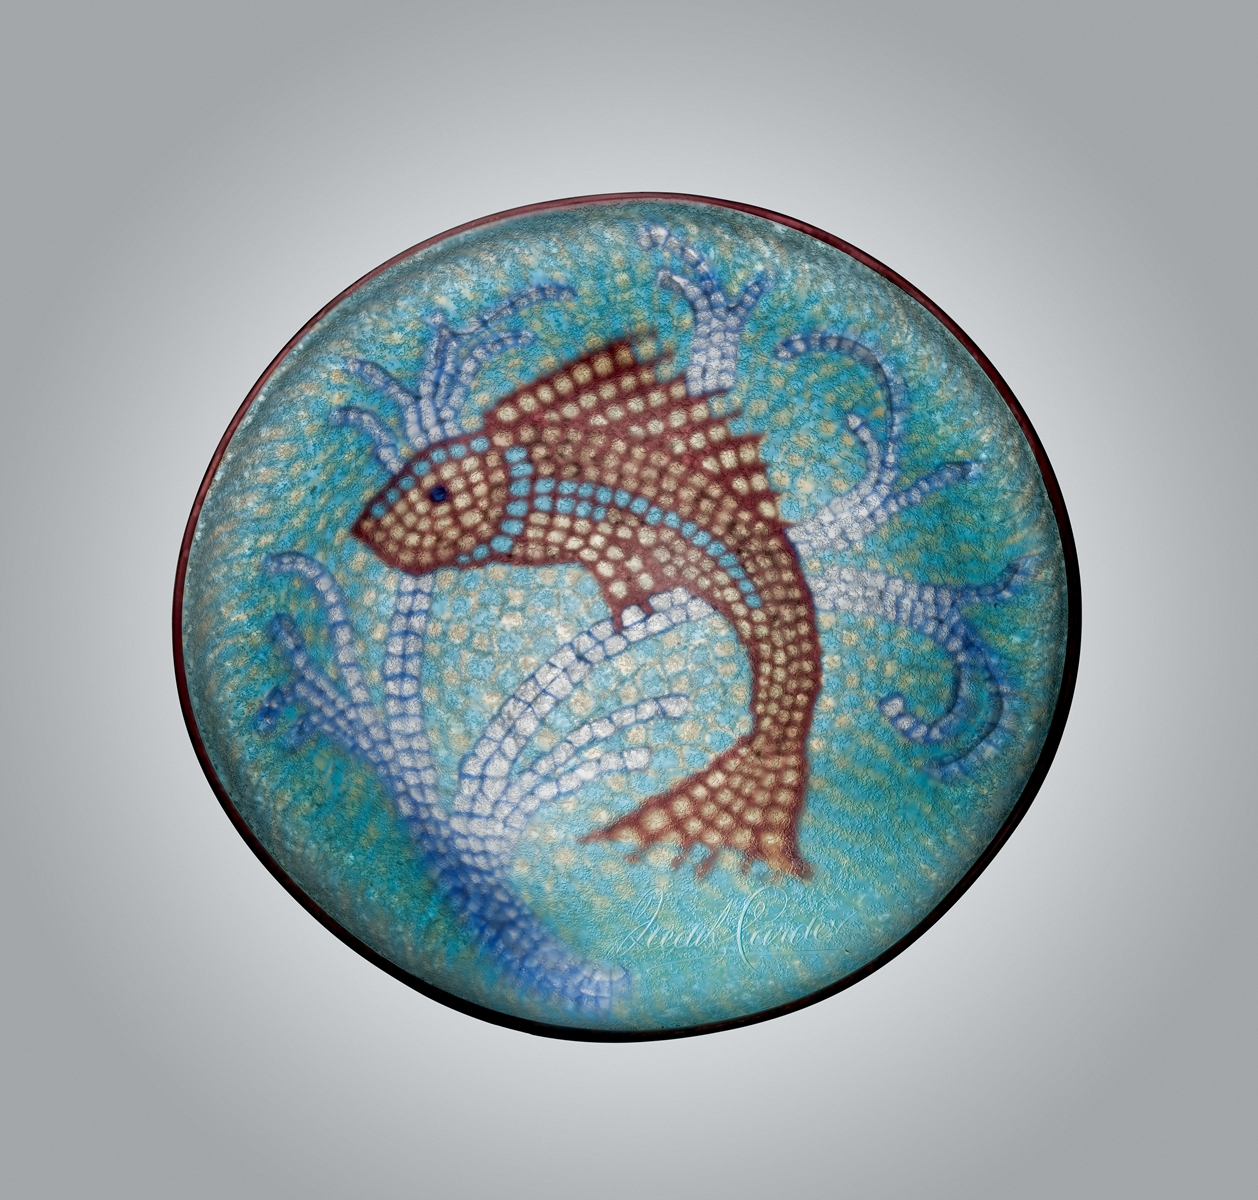 Carder-designed Mosaic Plate with Fish